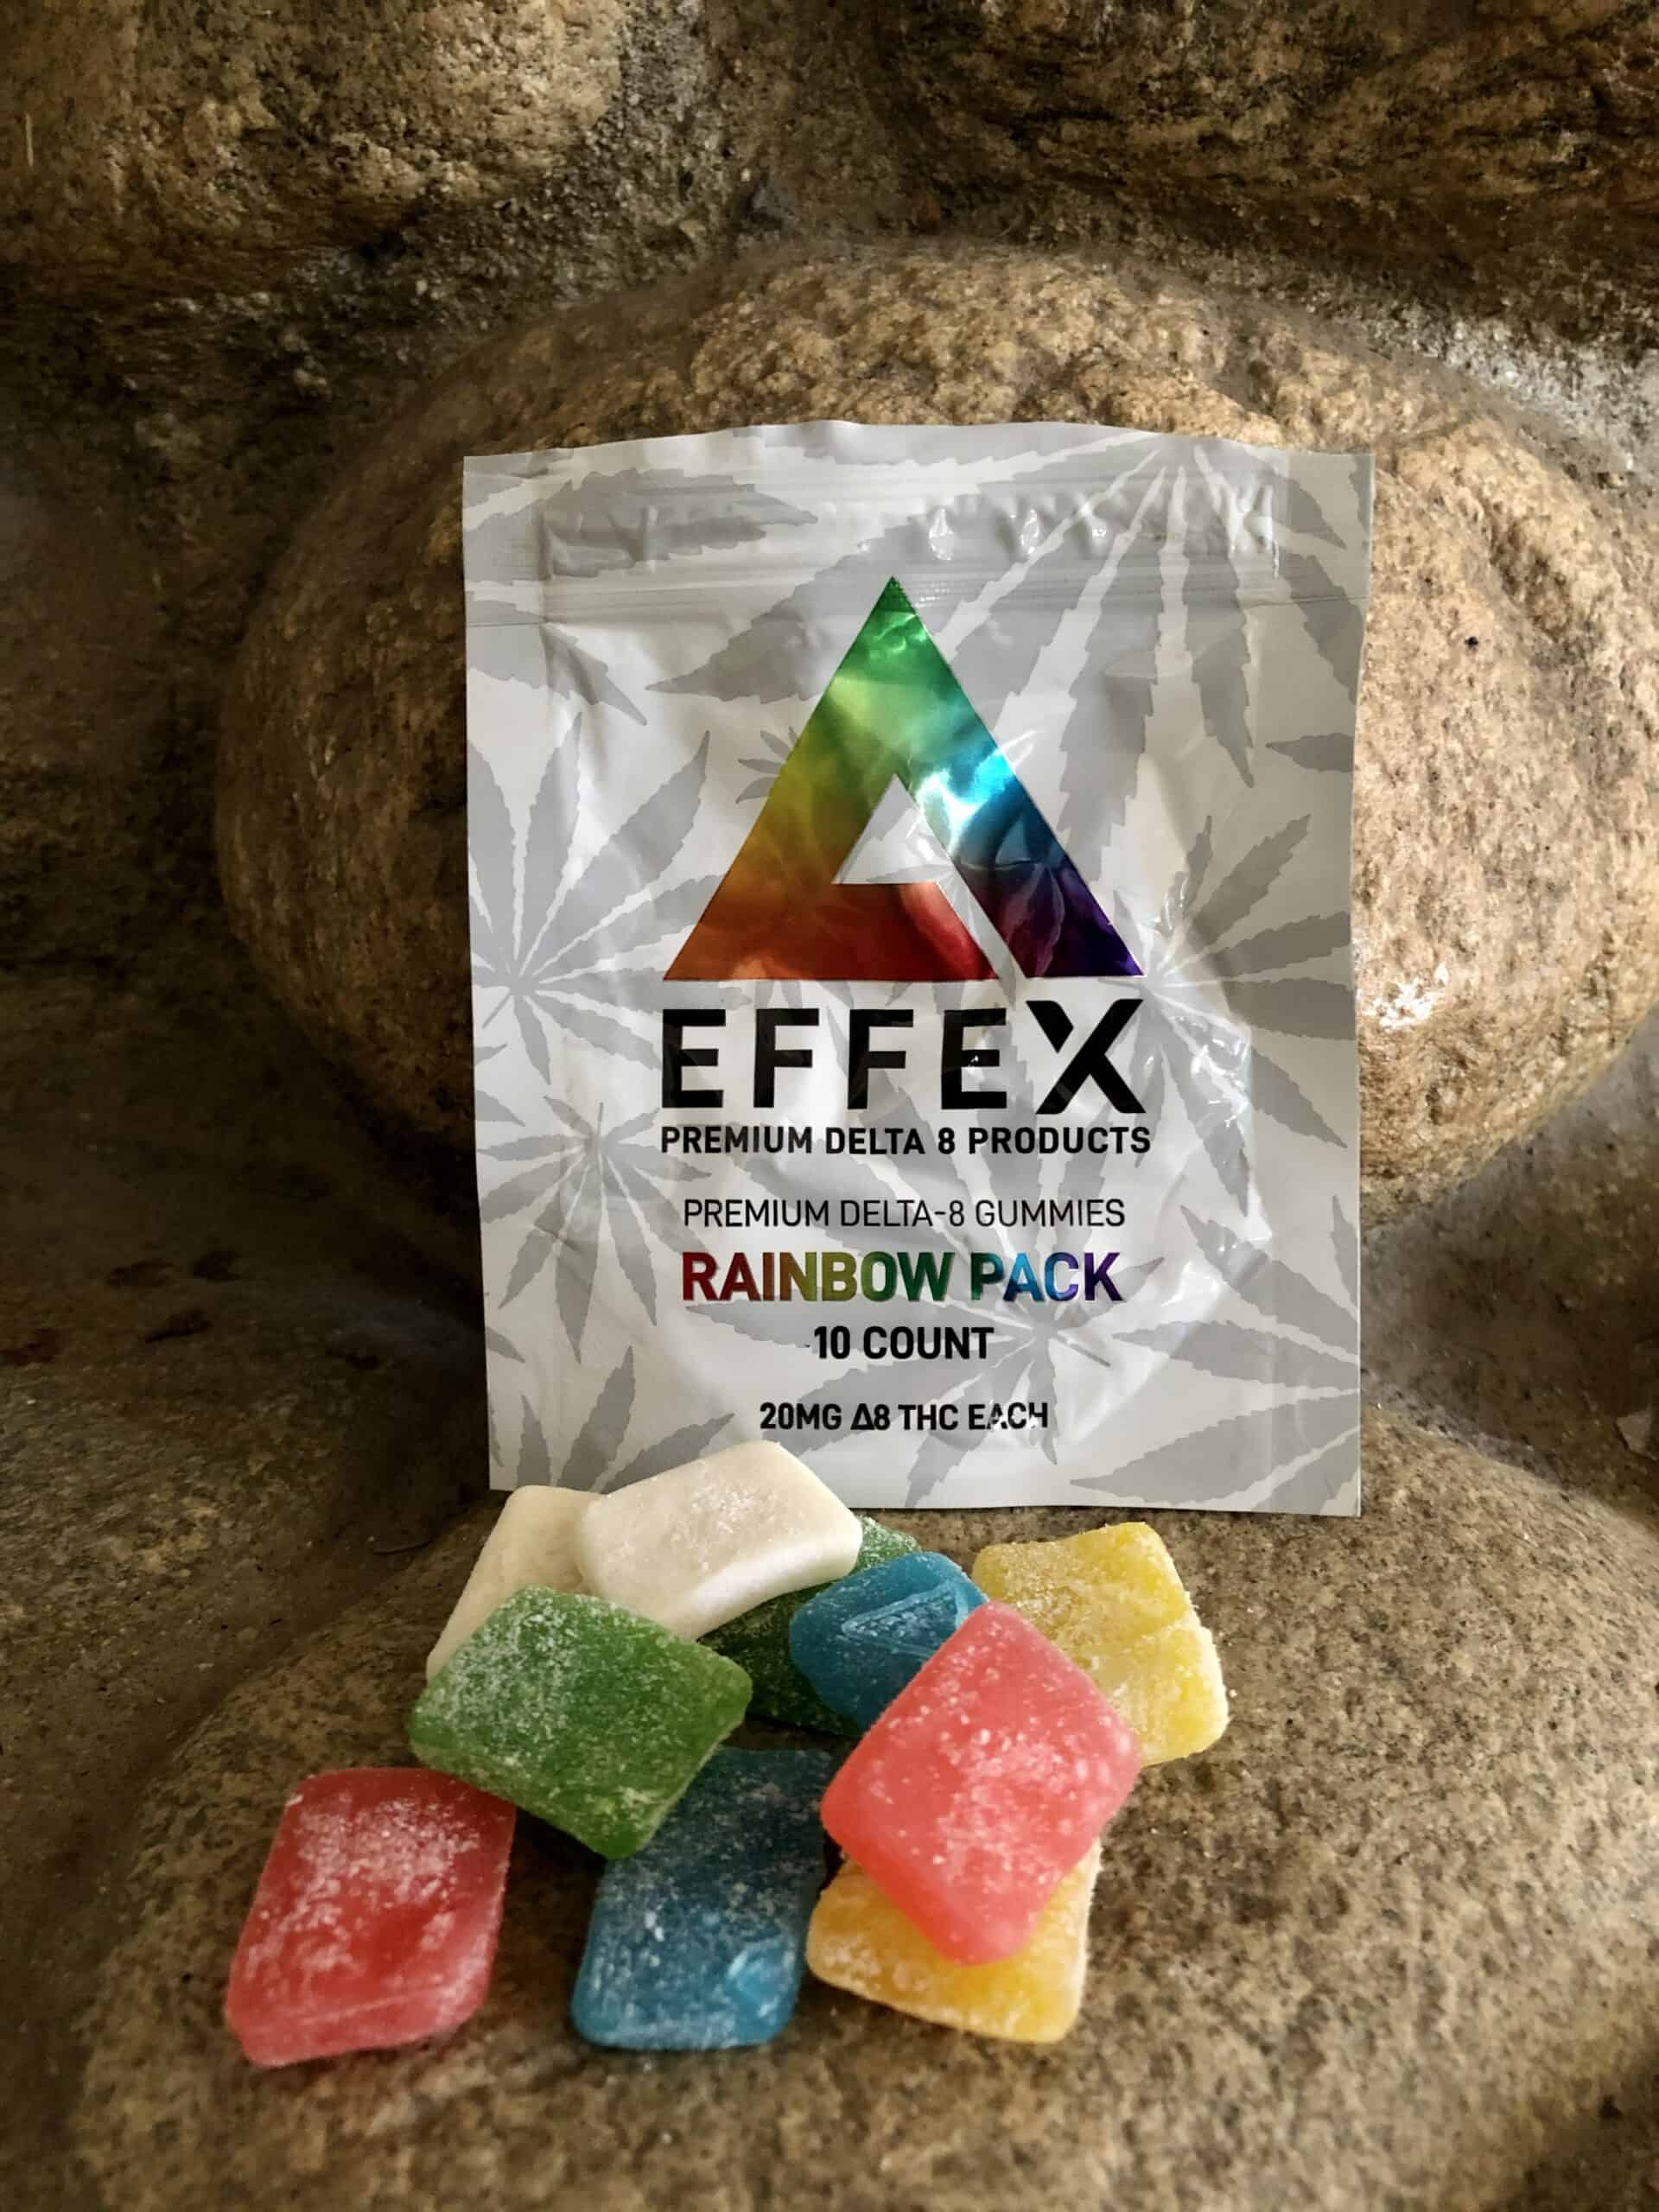 Delta Effex Rainbow Pack Premium Delta 8 THC Gummies Save On Cannabis Review Beauty Shot